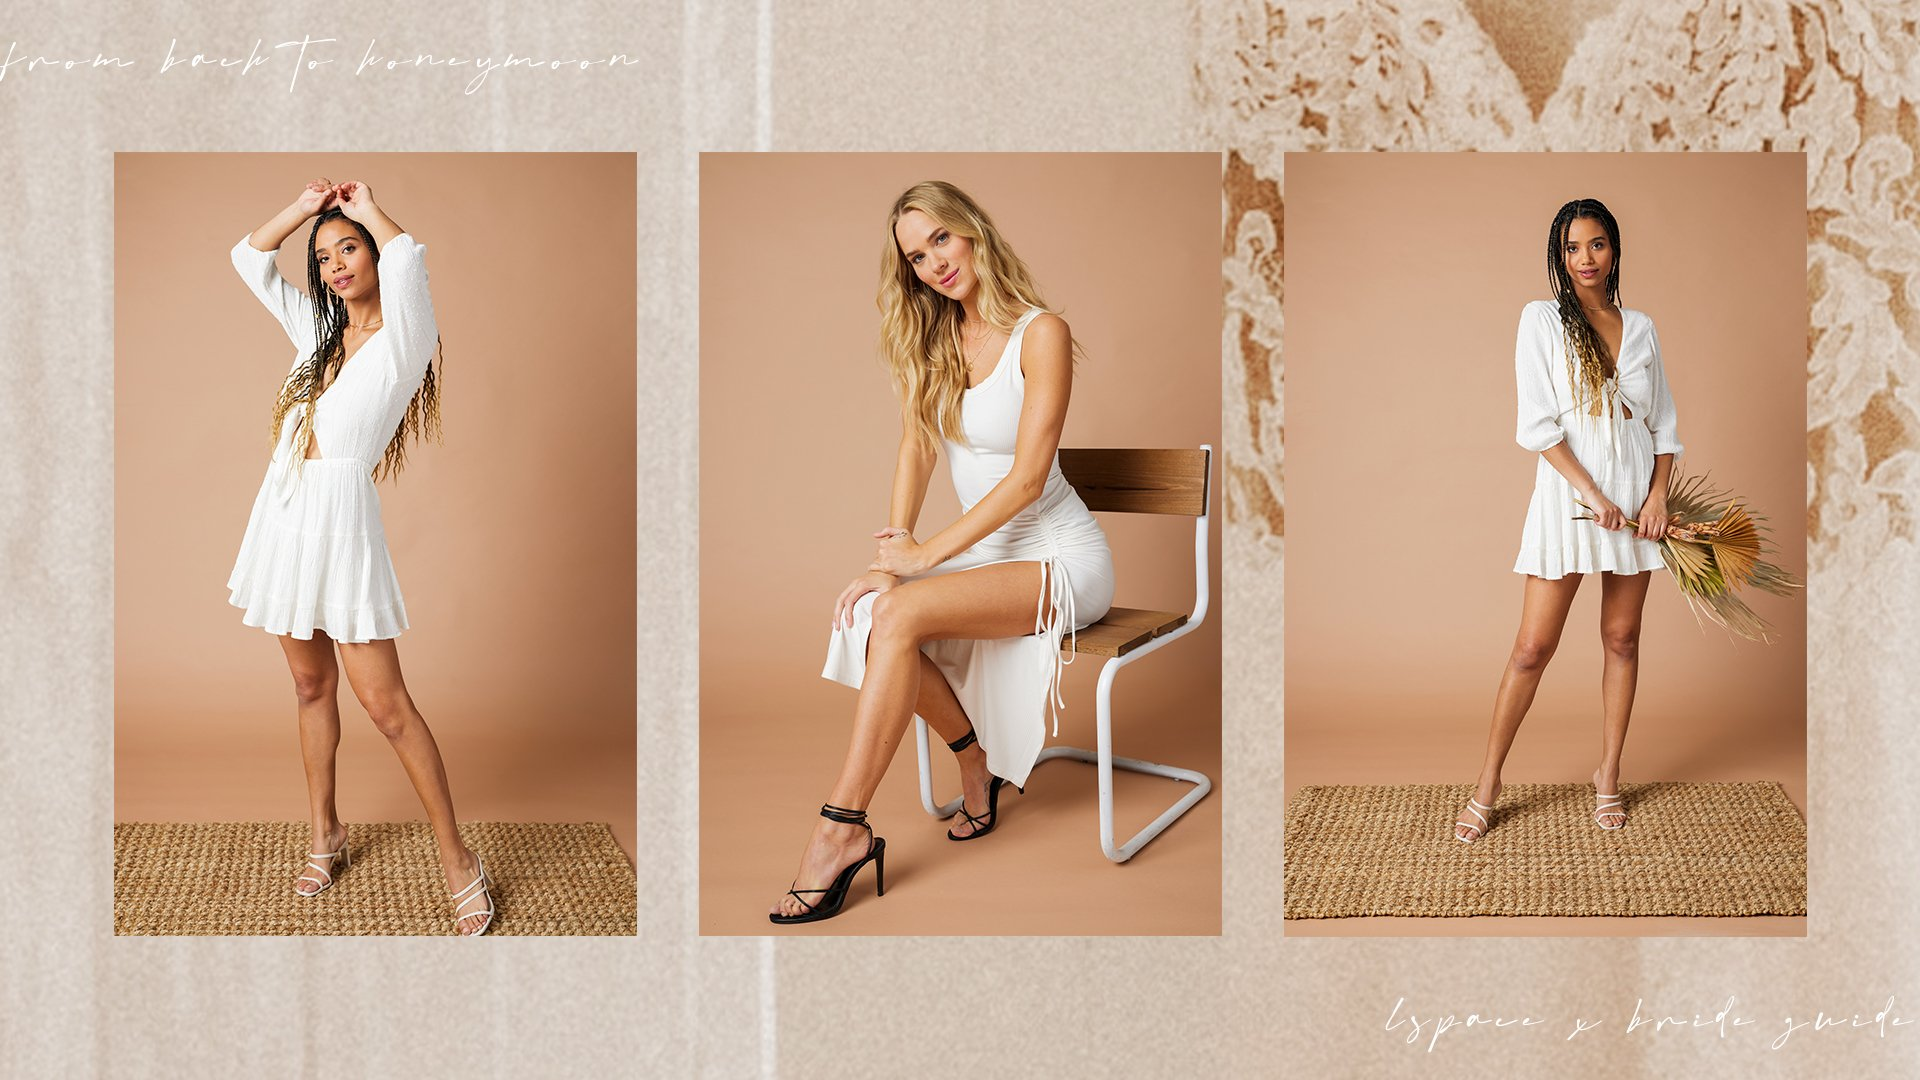 collage of three models wearing white dresses